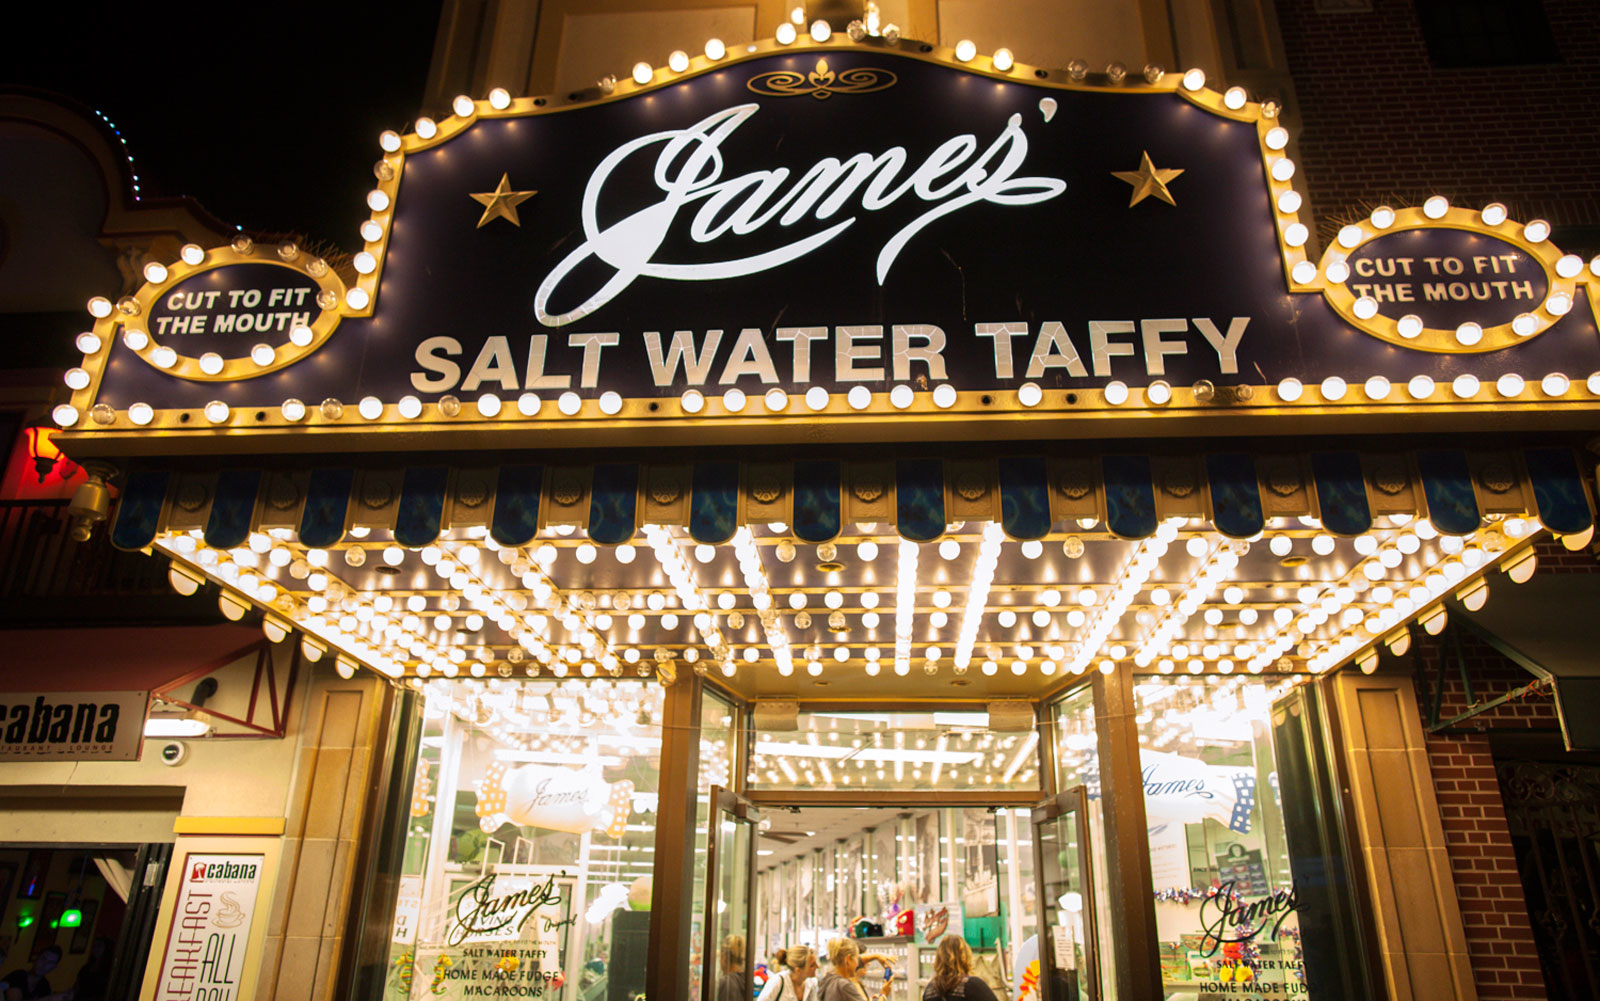 evening in atlantic city james' salt water taffy